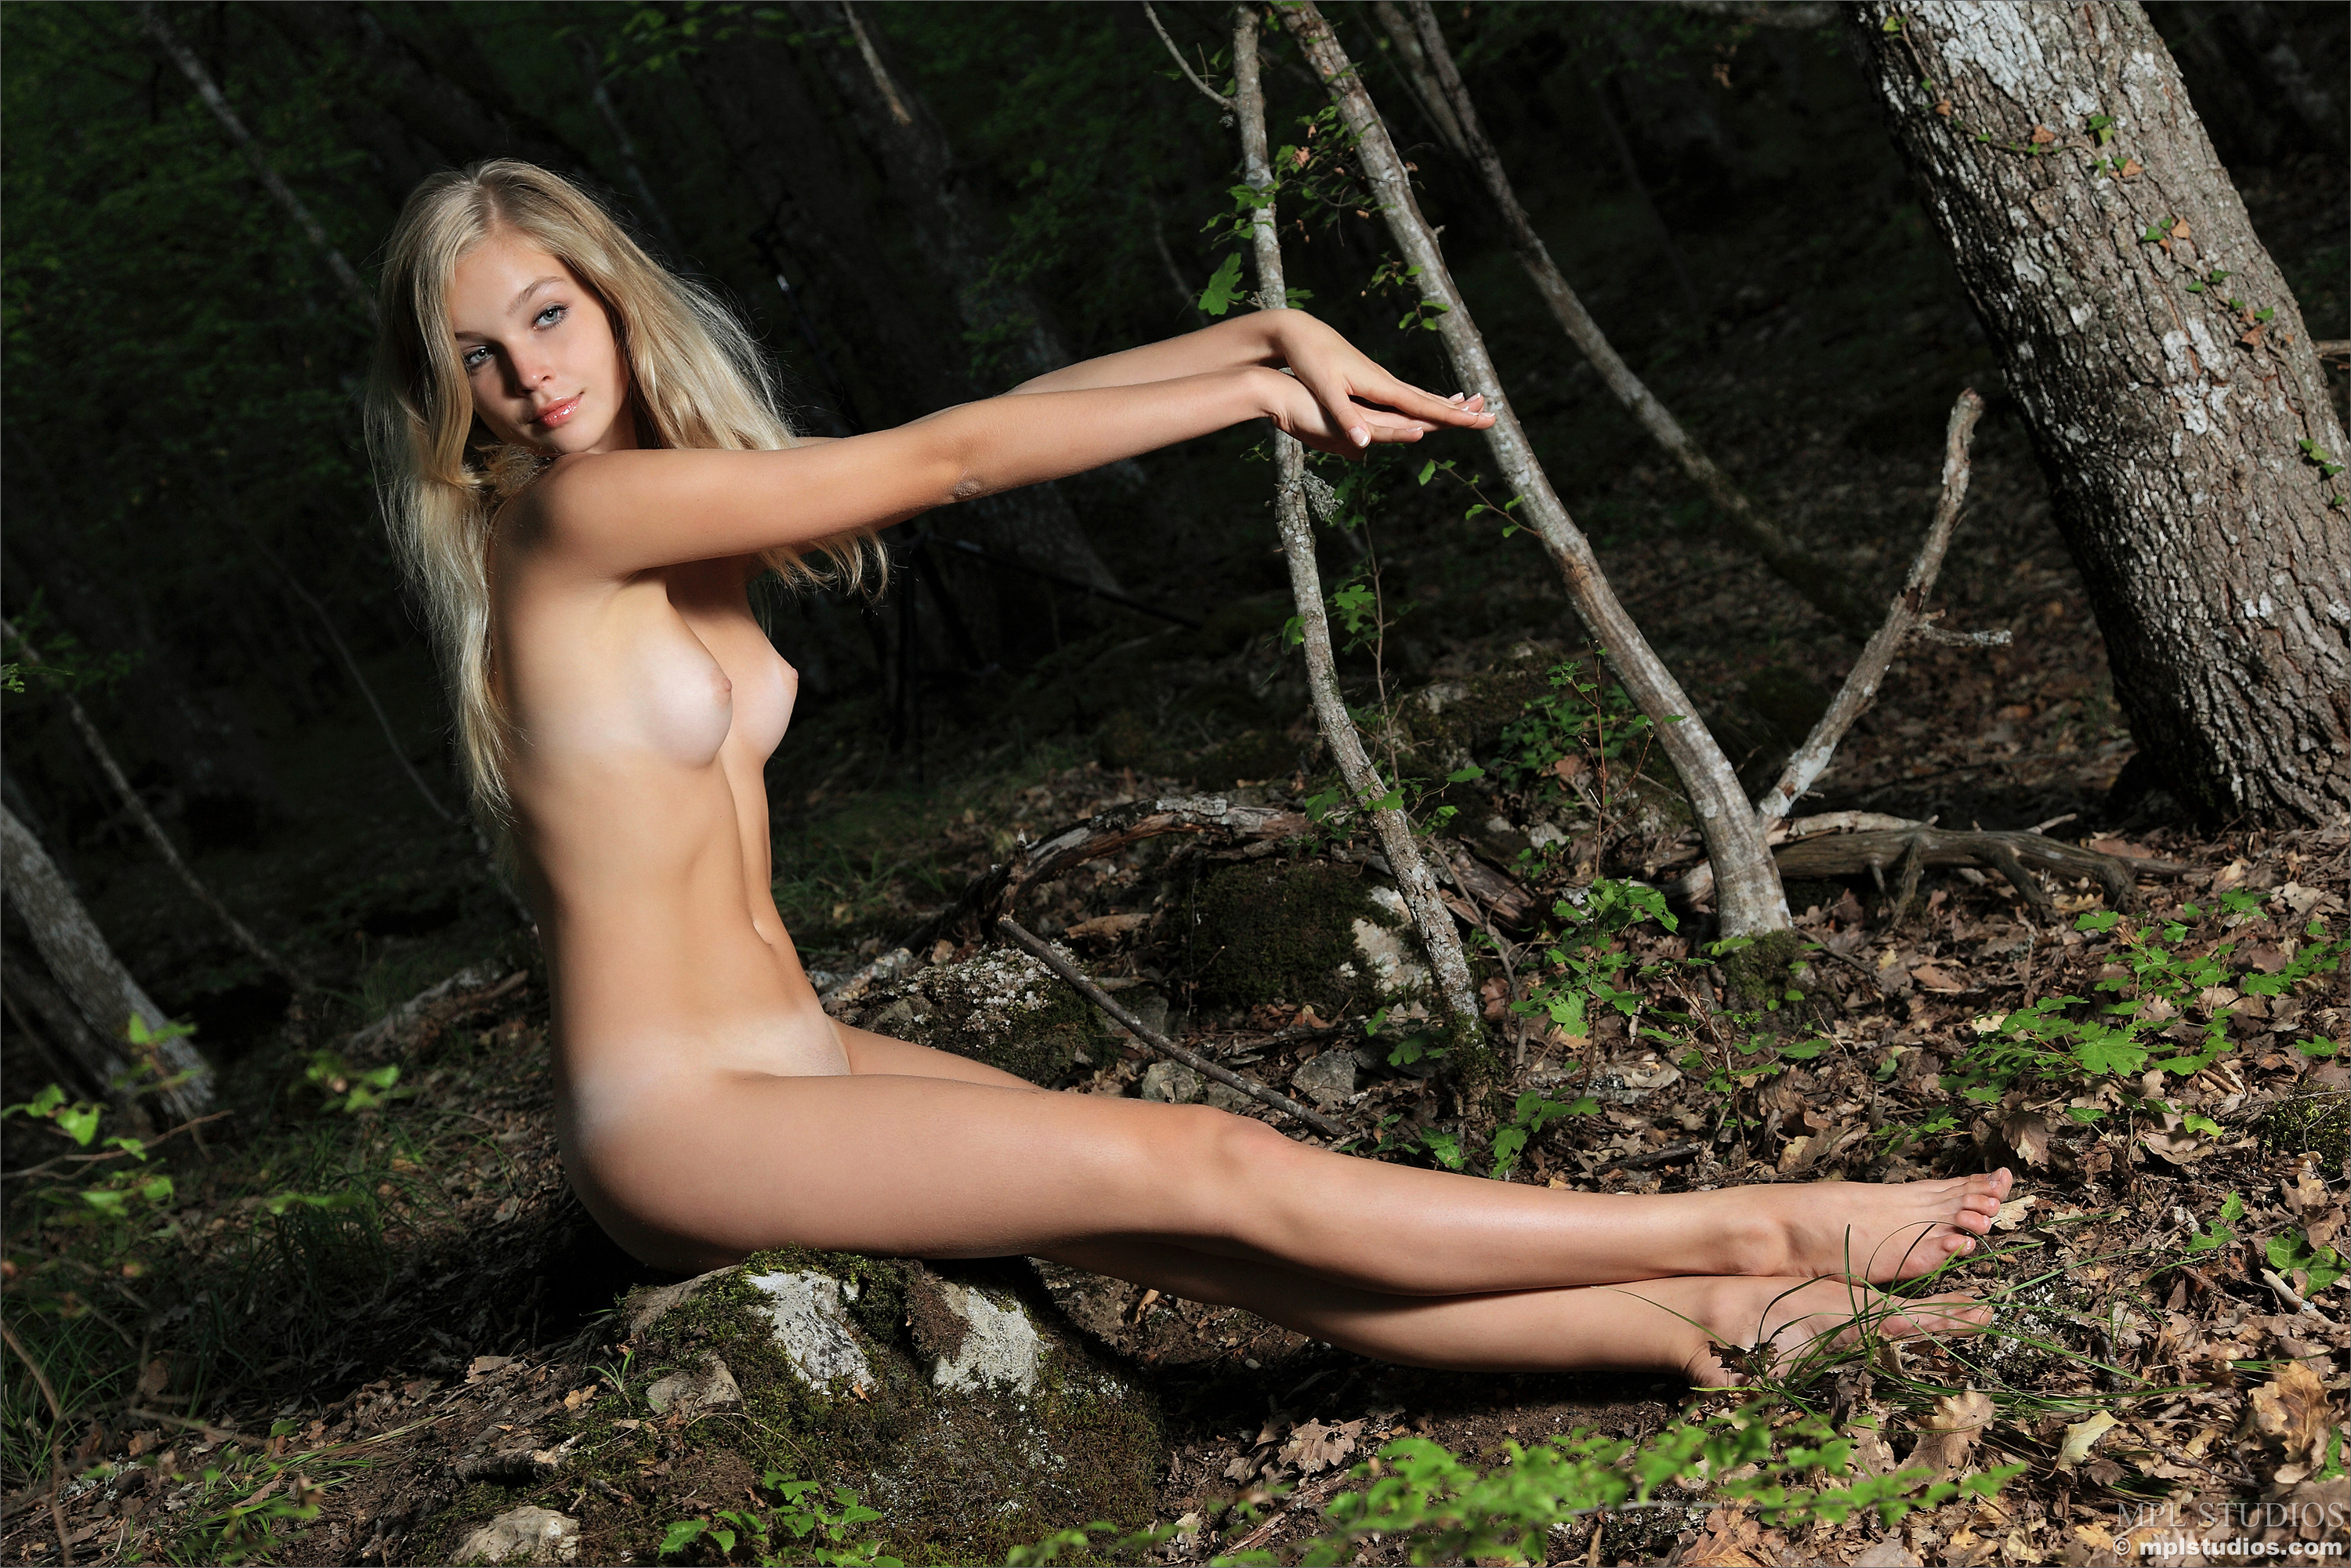 Sienna guillory nude celebrities